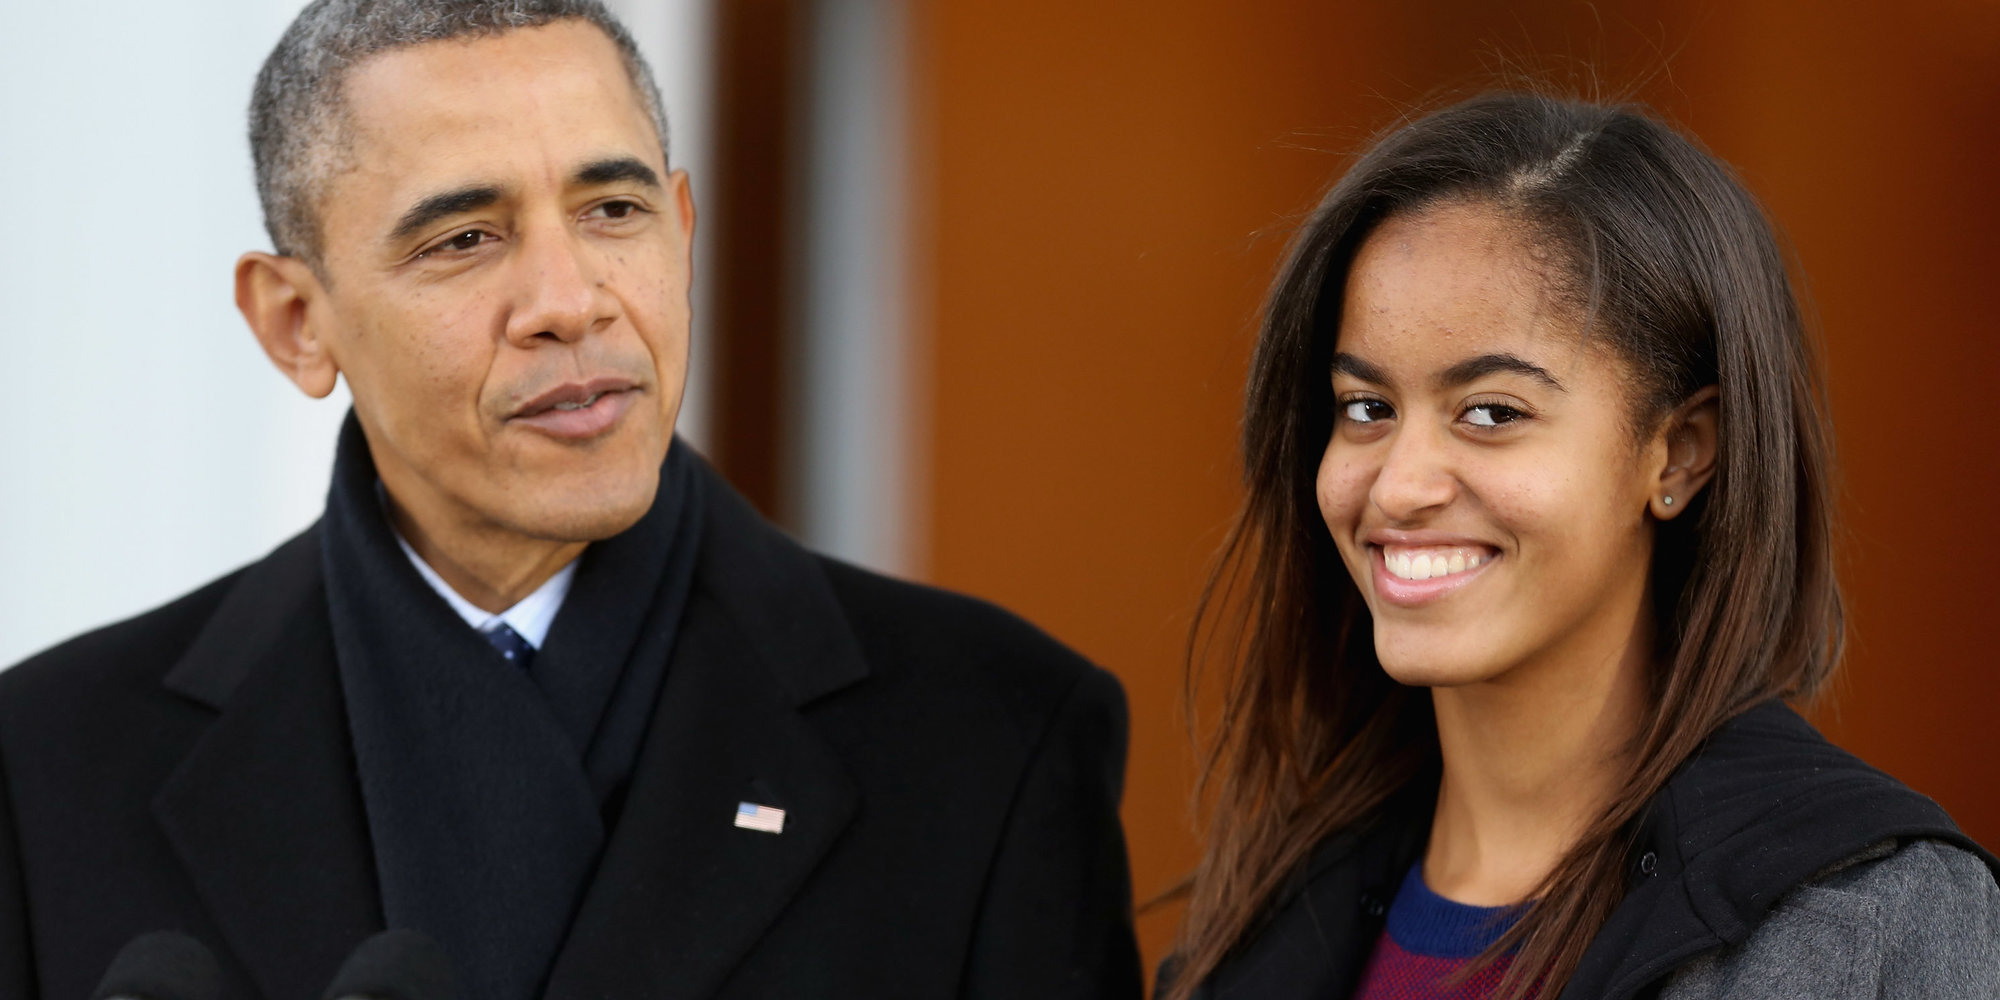 Should Malia Obama Serve Jail Time Like Everyone Else For Smoking Weed Illegally?